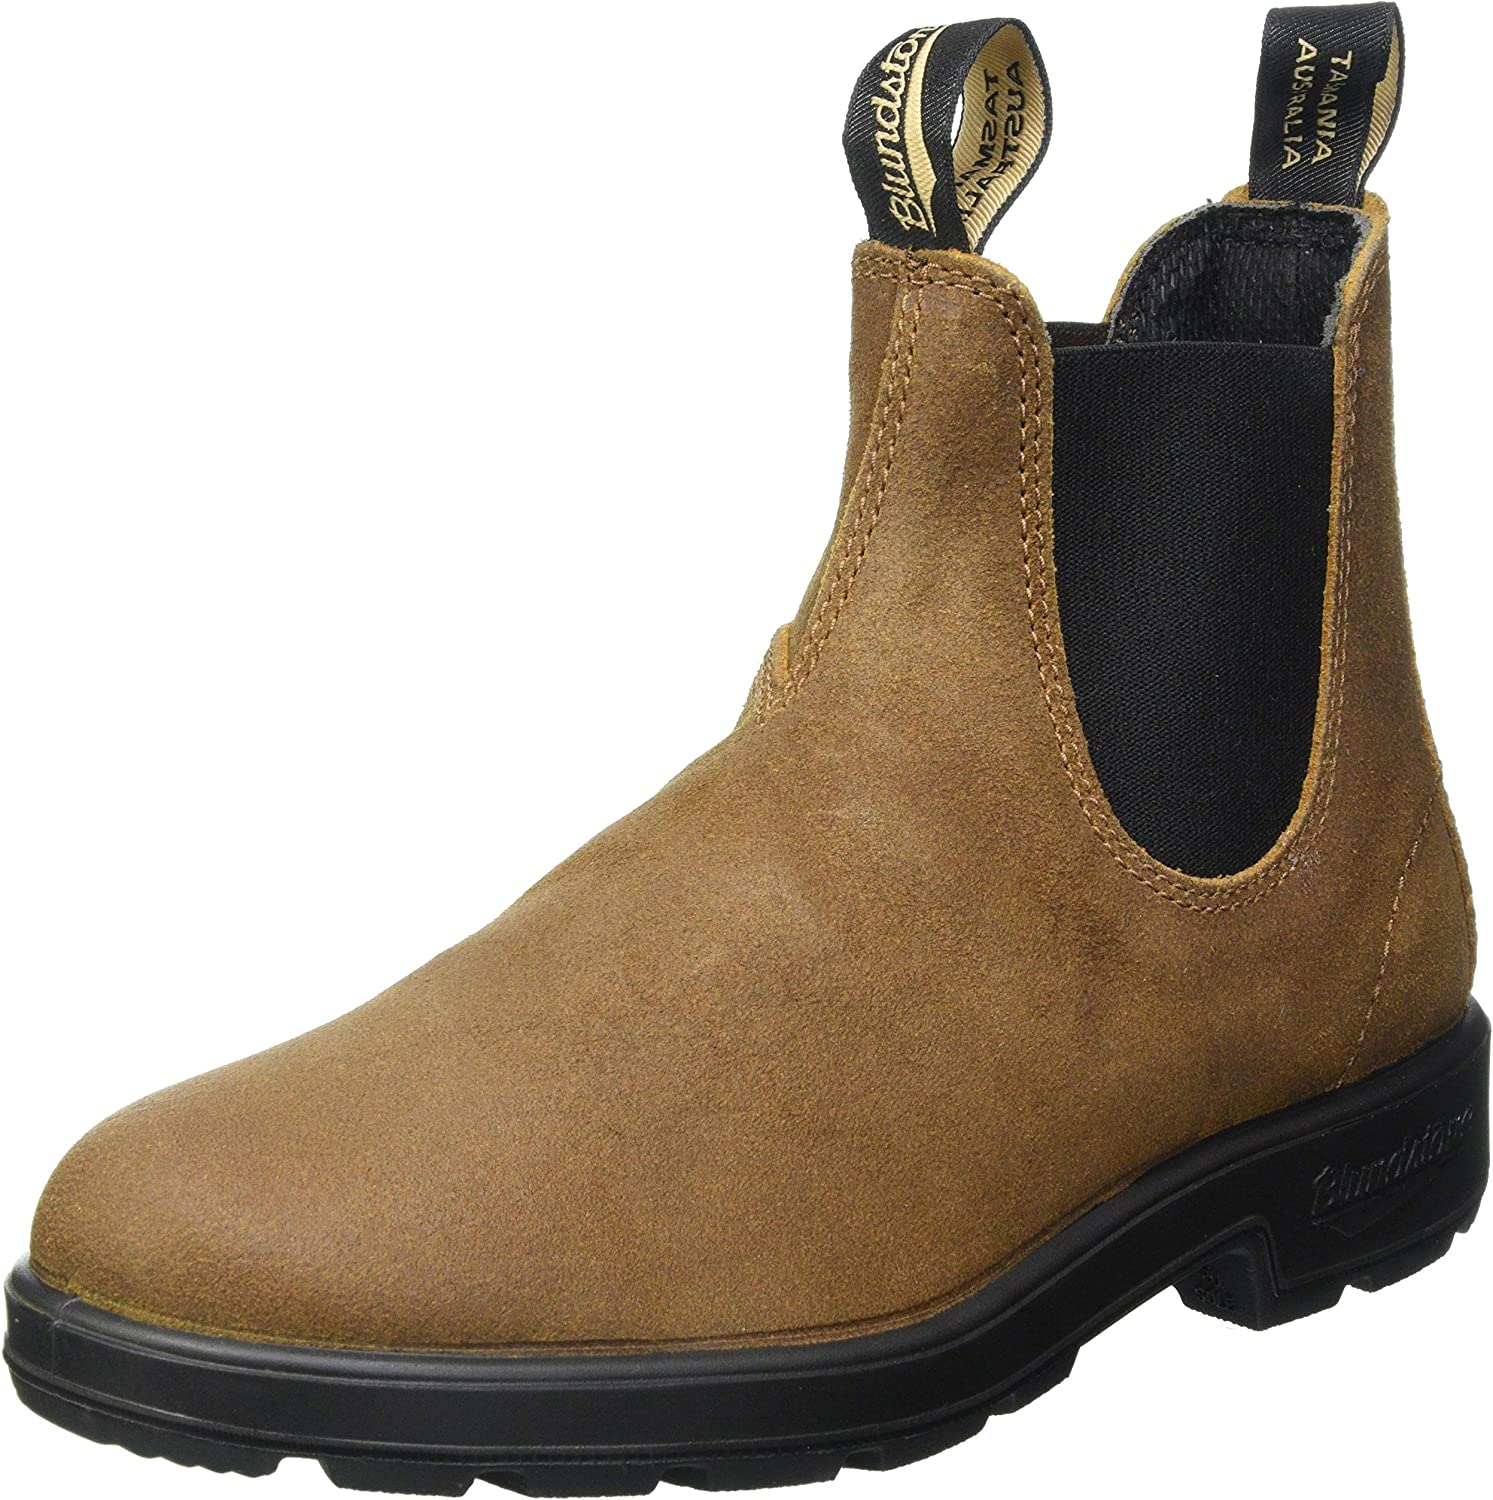 Blundstone Men's Original 500 Chelsea Series Ranking Special price for a limited time TOP10 Boot